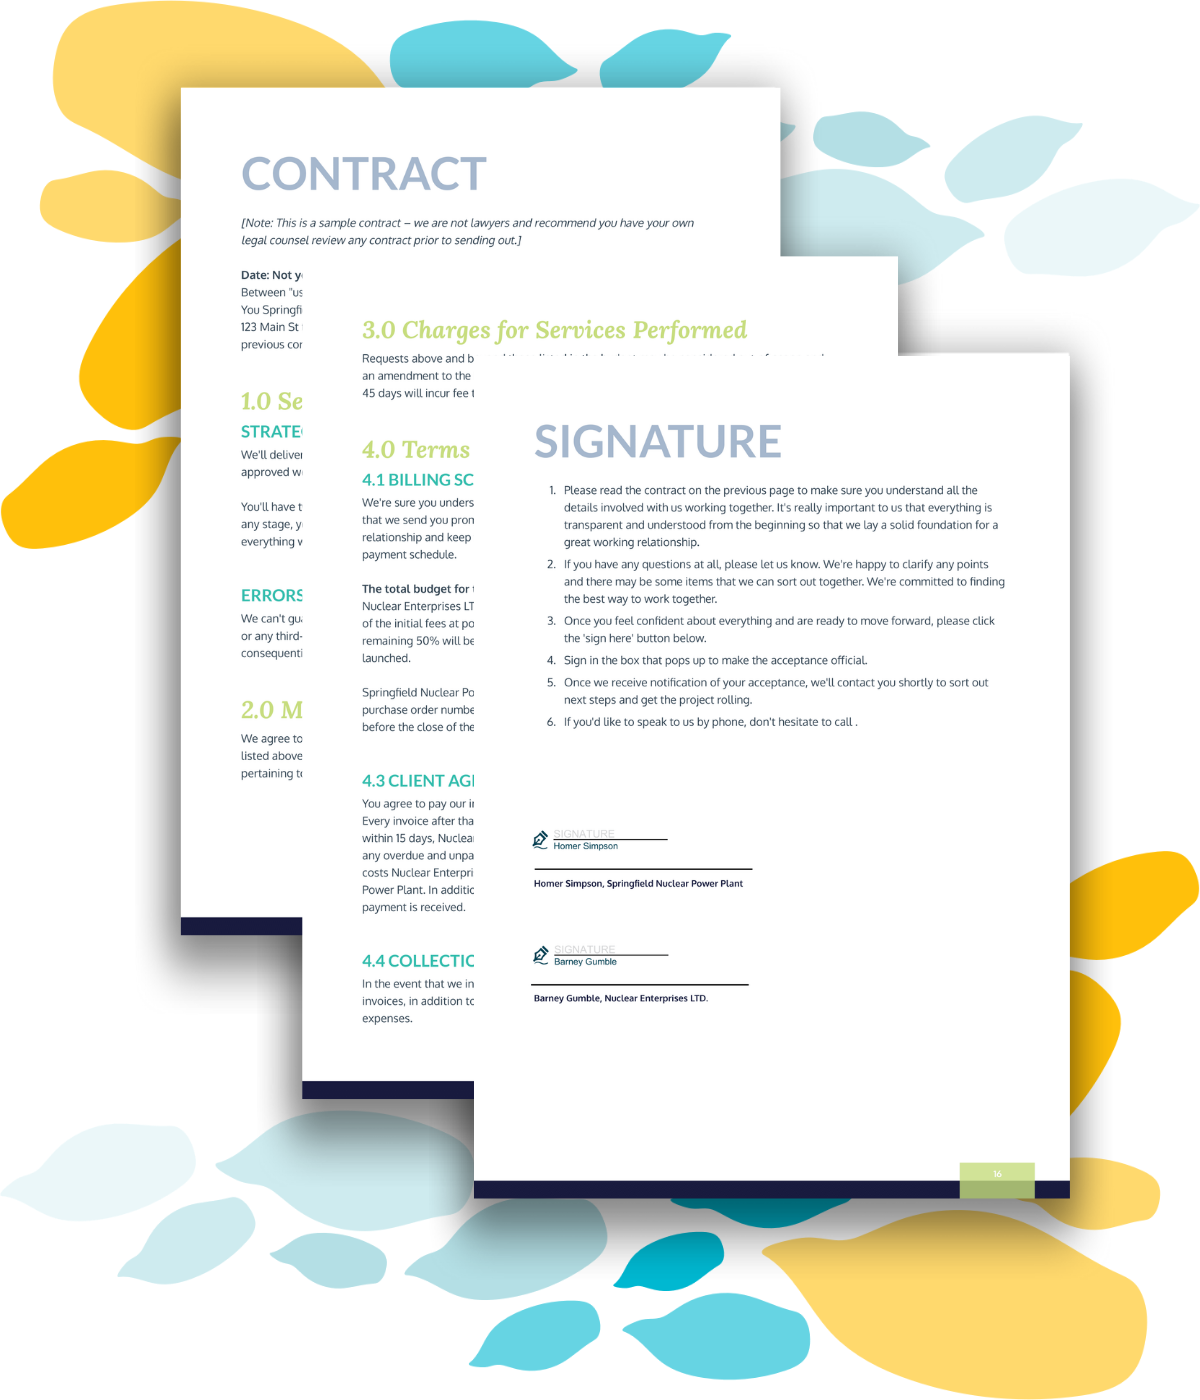 Sample contract and esignature sign-off page for a strategic marketing business proposal.